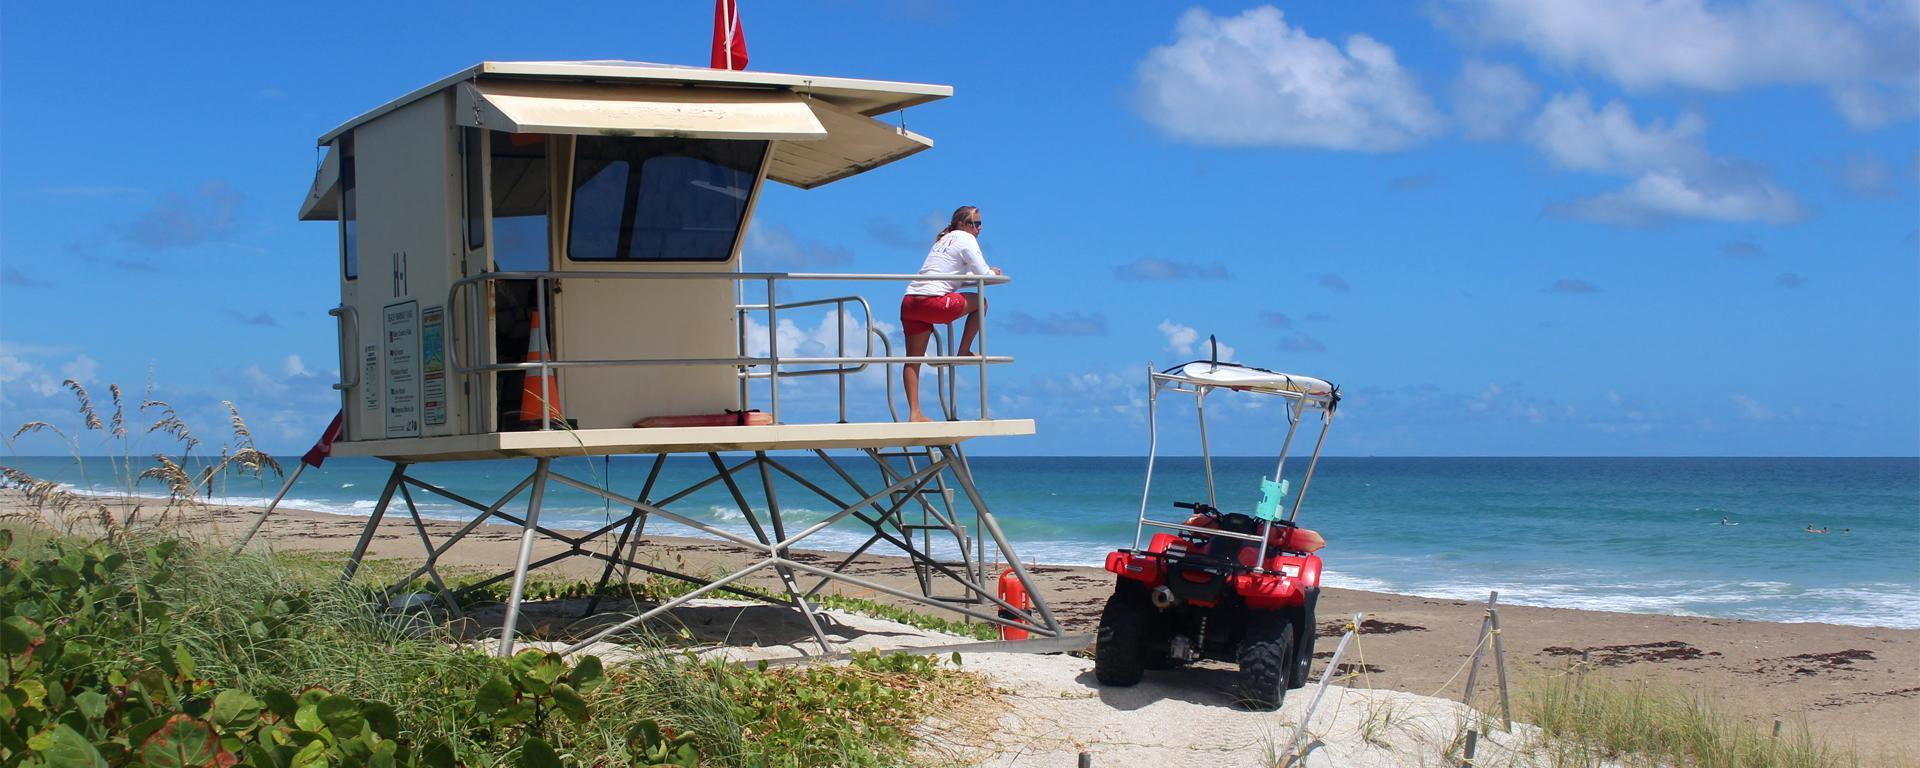 An image of a lifeguard tower at Jensen Beach